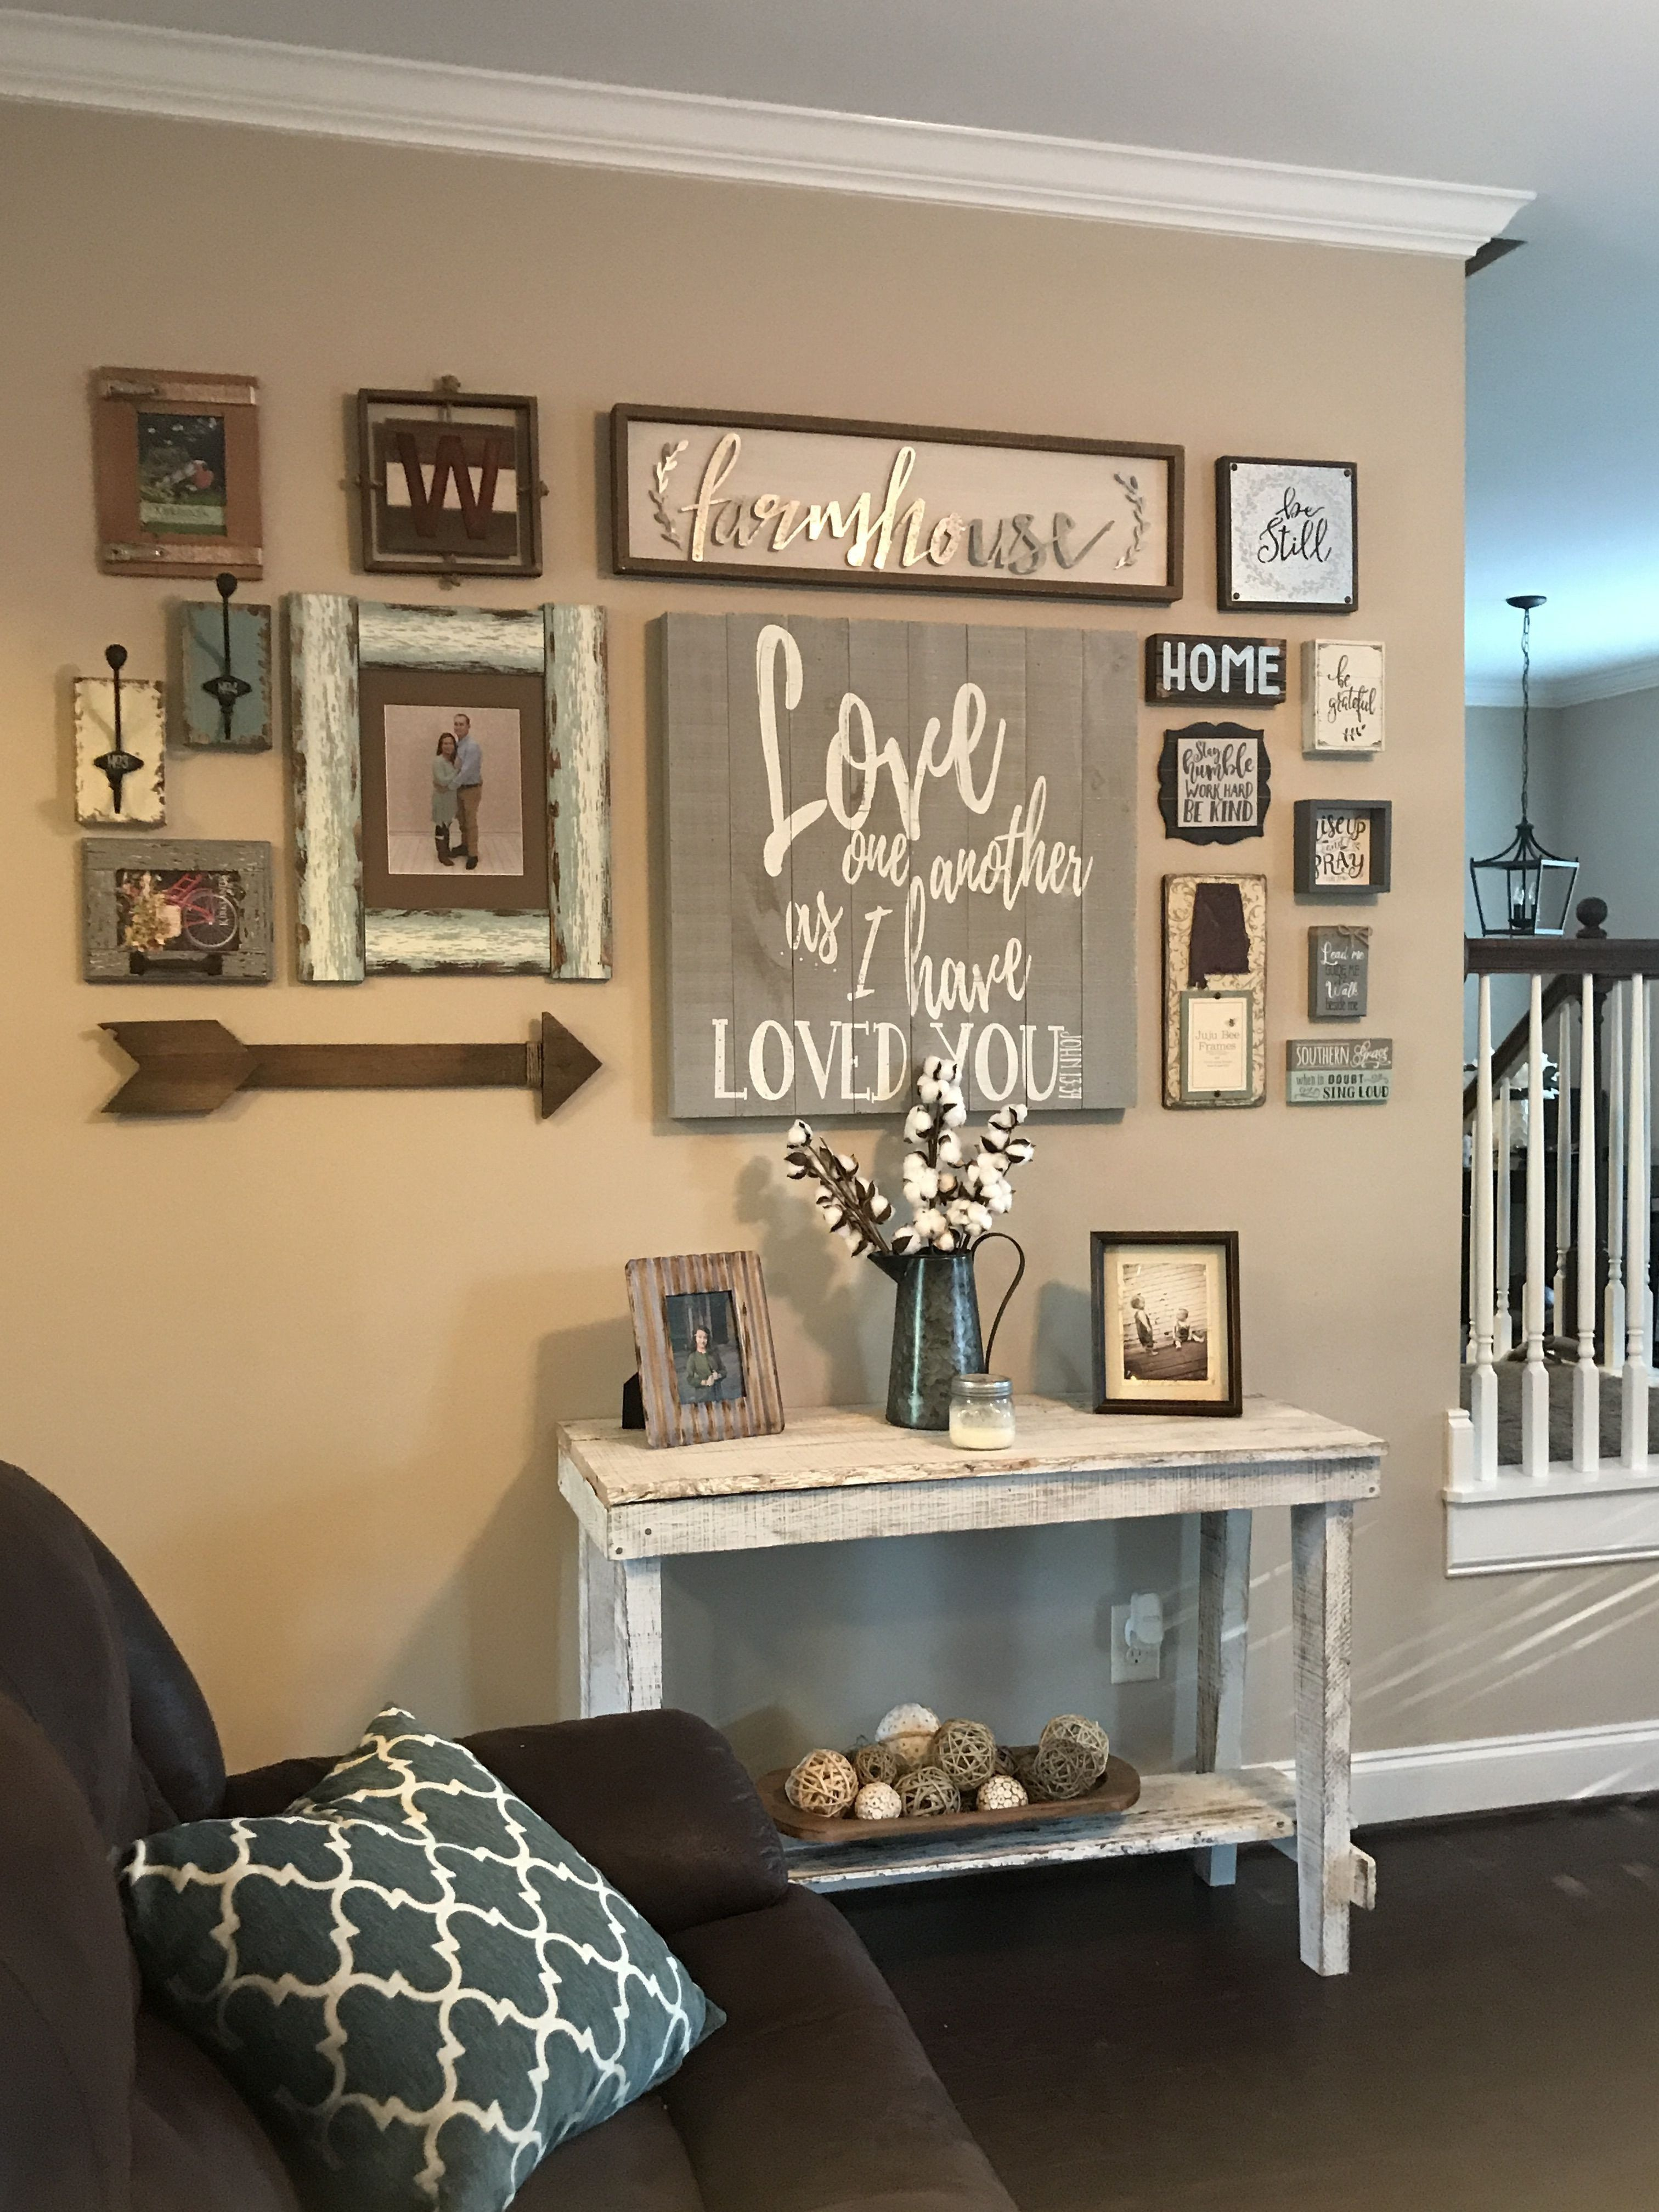 Rustic Bedroom Wall Decor Best Of New Collage Wall In 2020 In 2020 Farm House Living Room Farmhouse Decor Living Room Room Wall Decor